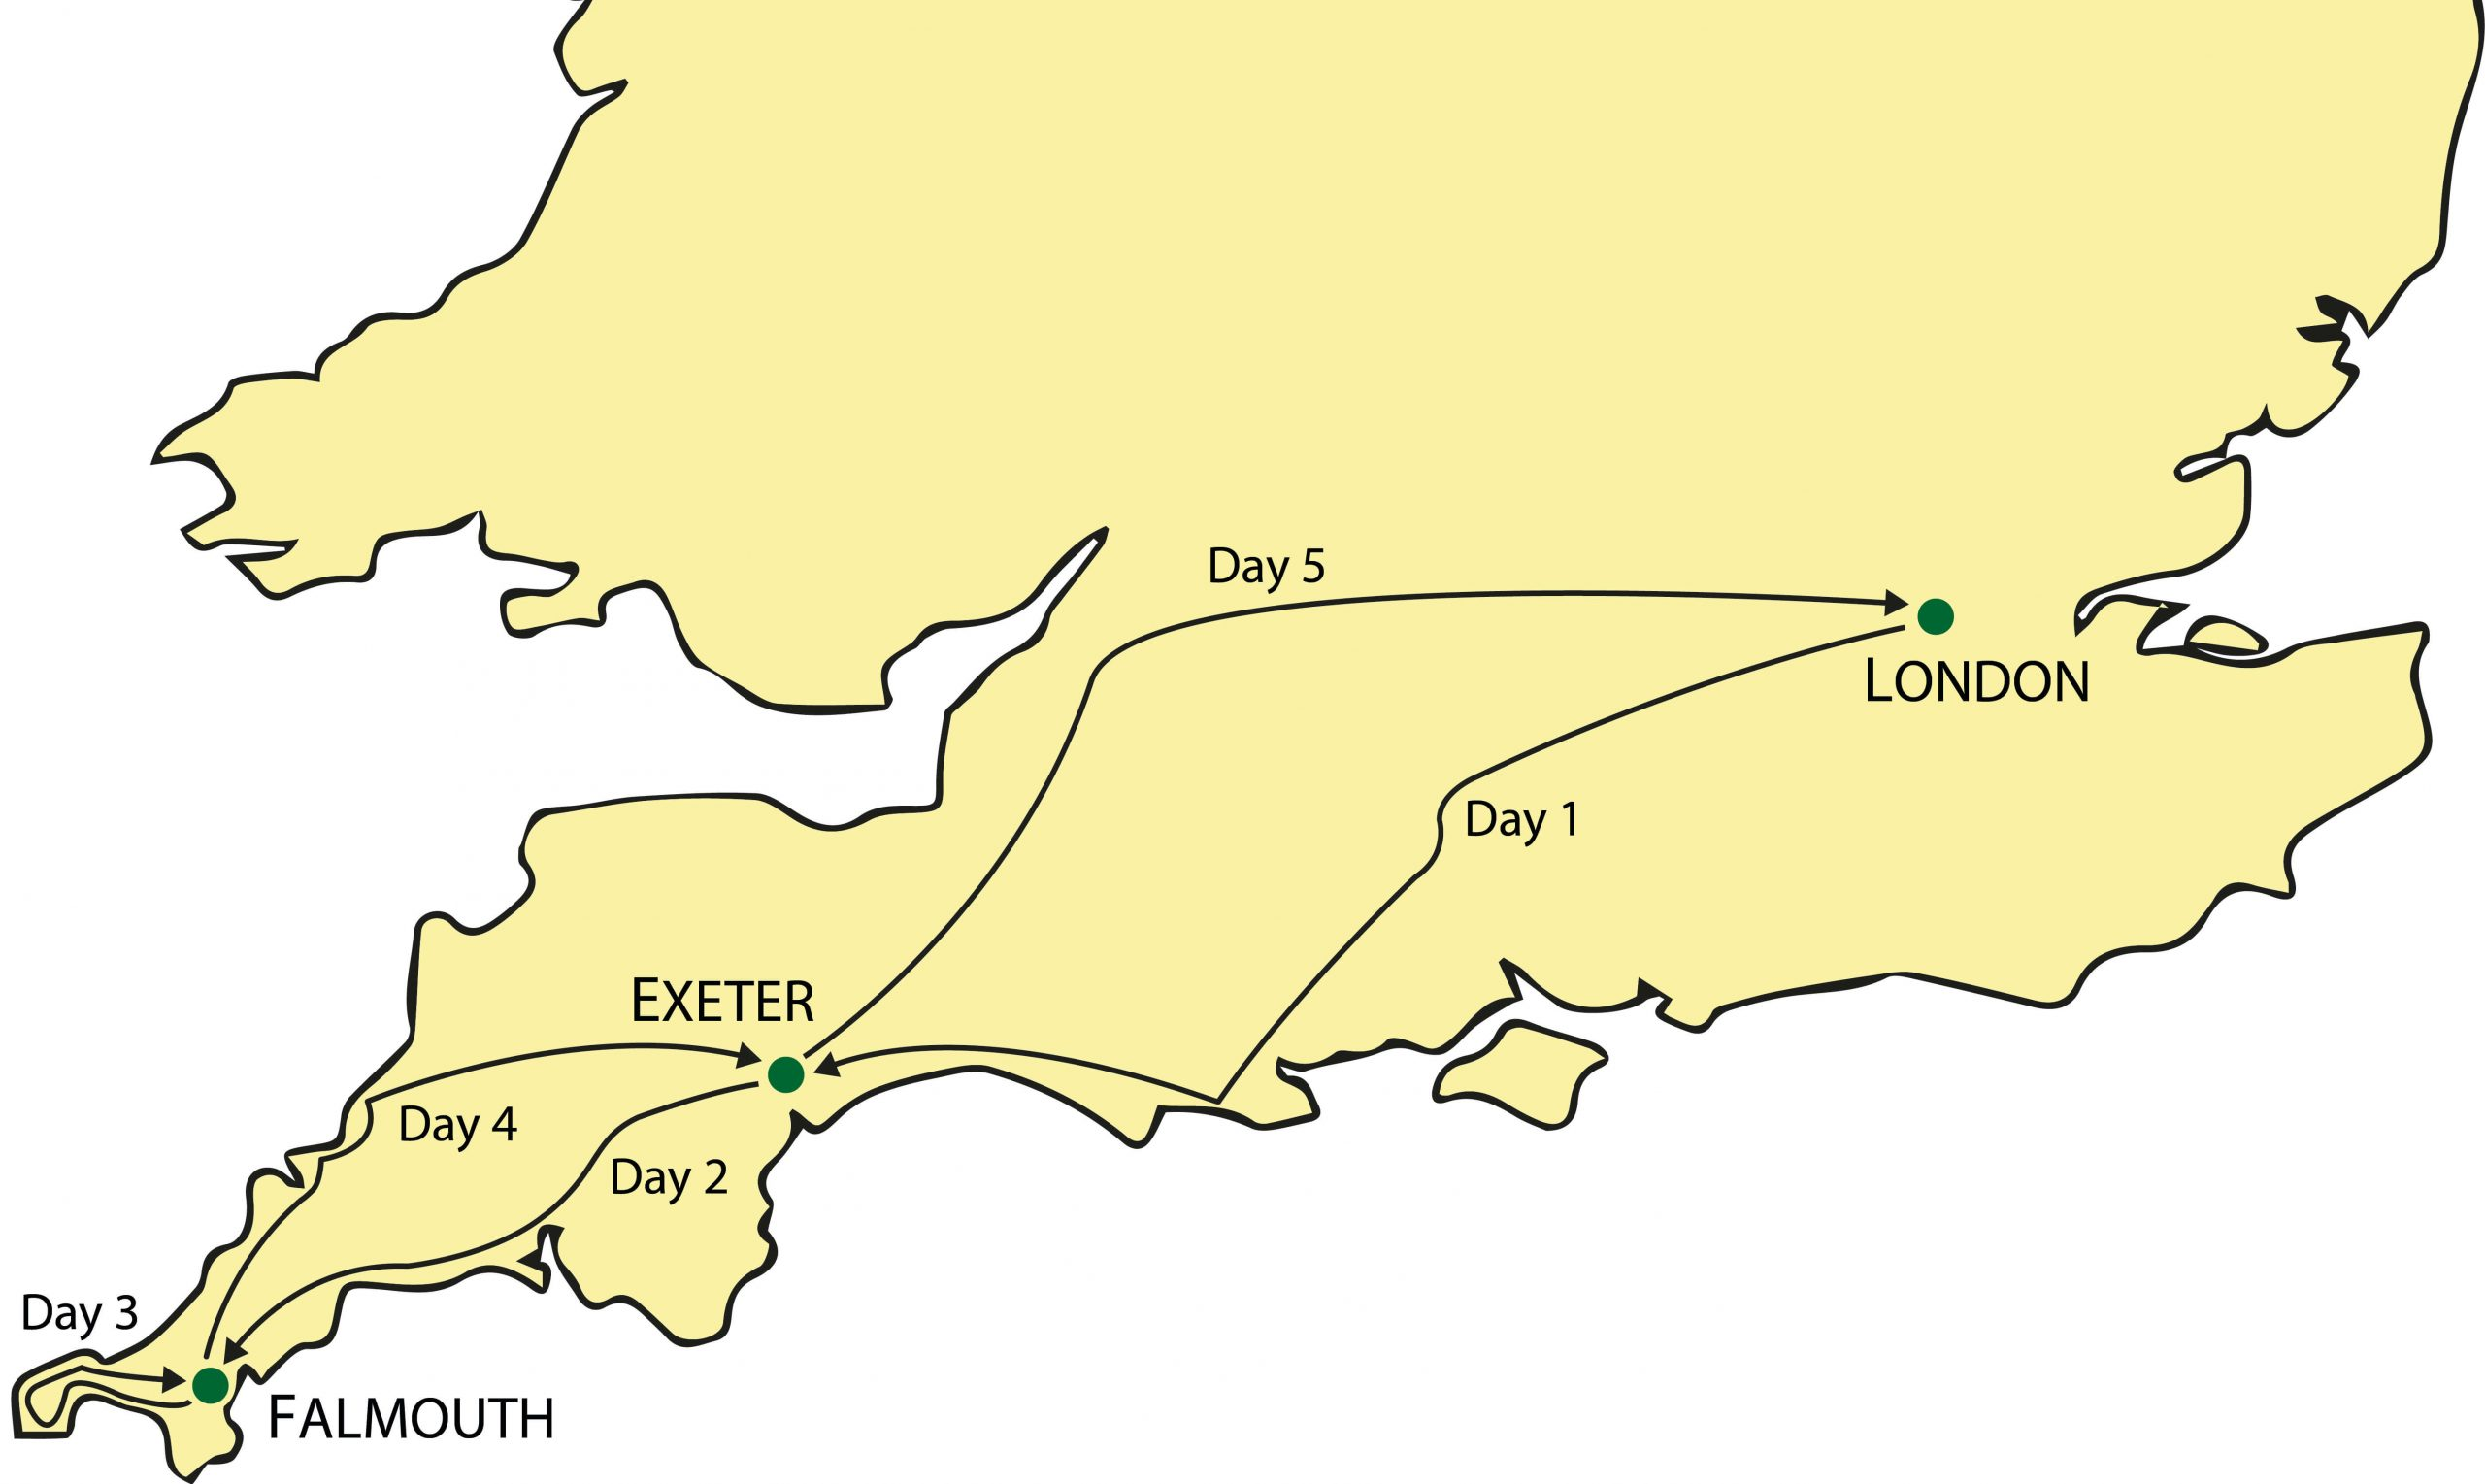 Cornwall & the Cotswolds Tour Map